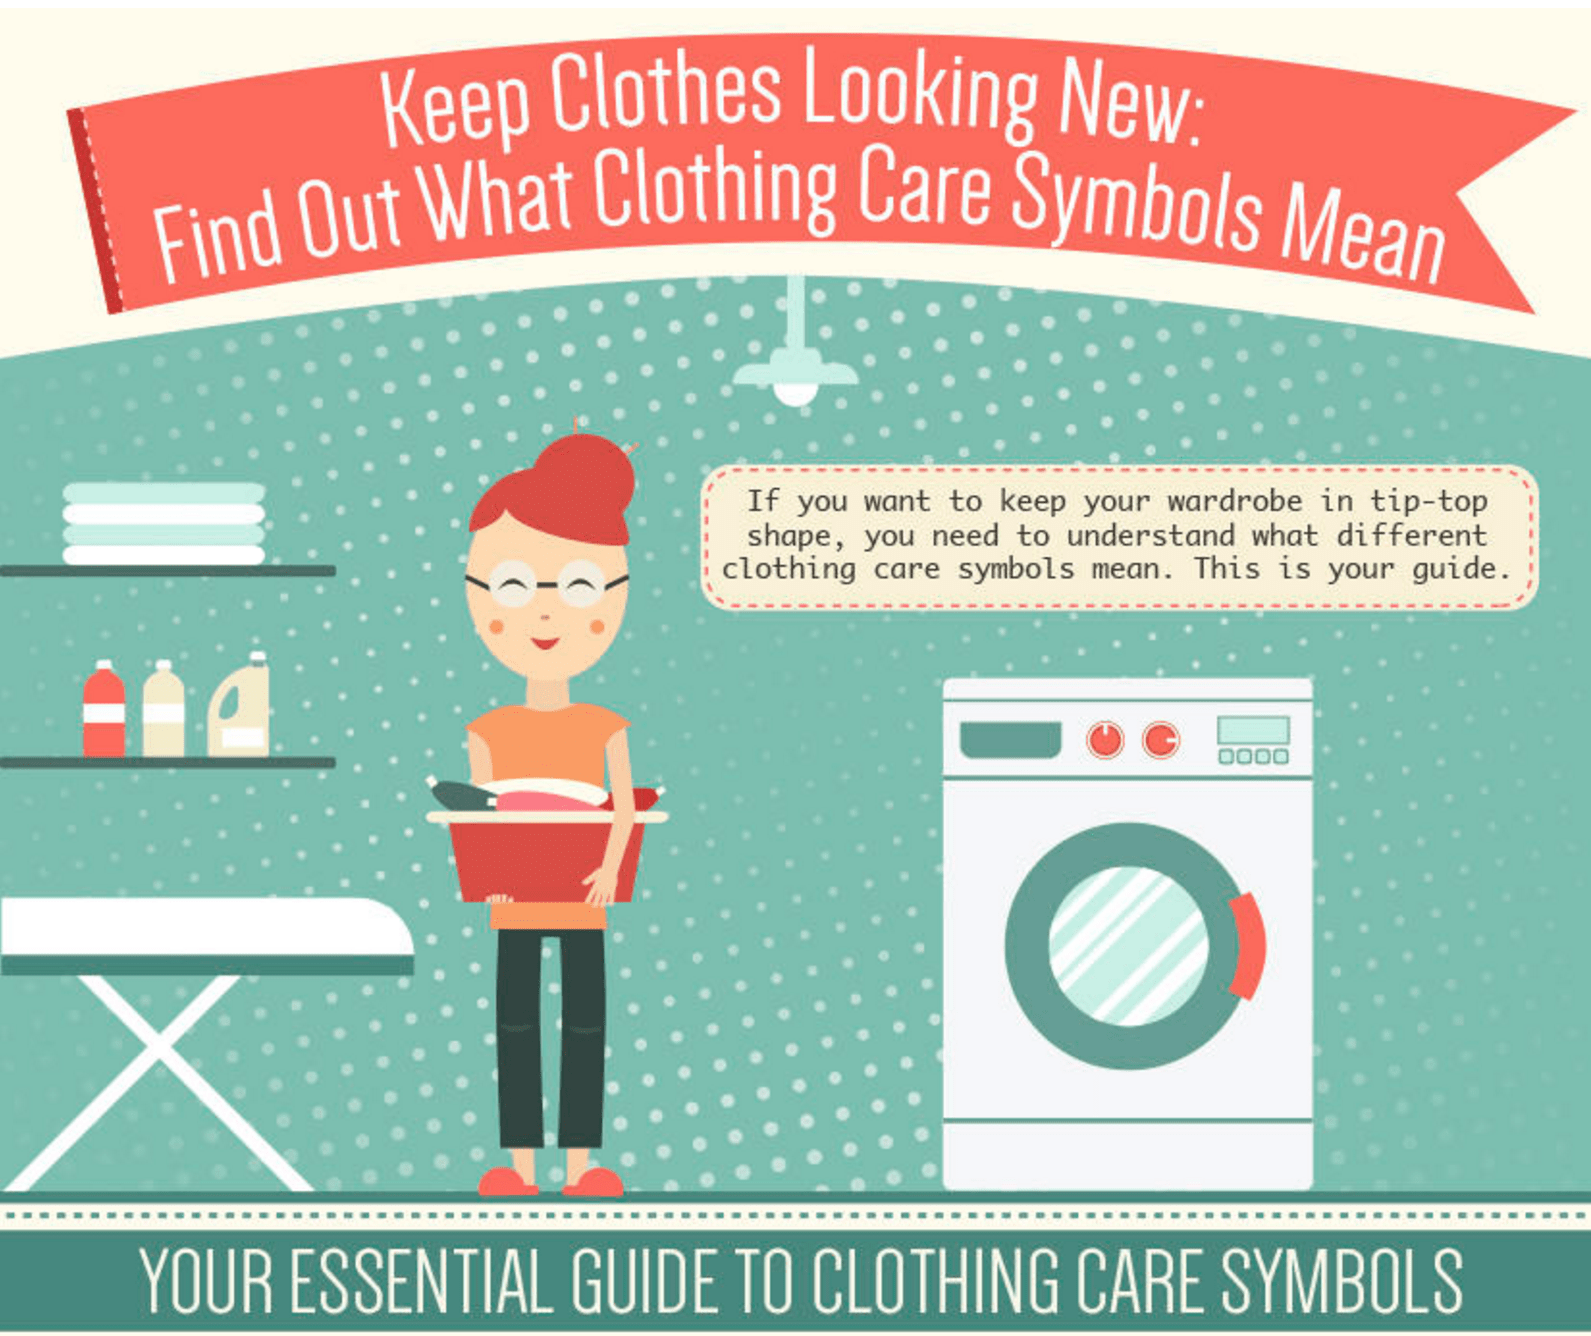 Clothing Care Symbols: Find Out What They Mean